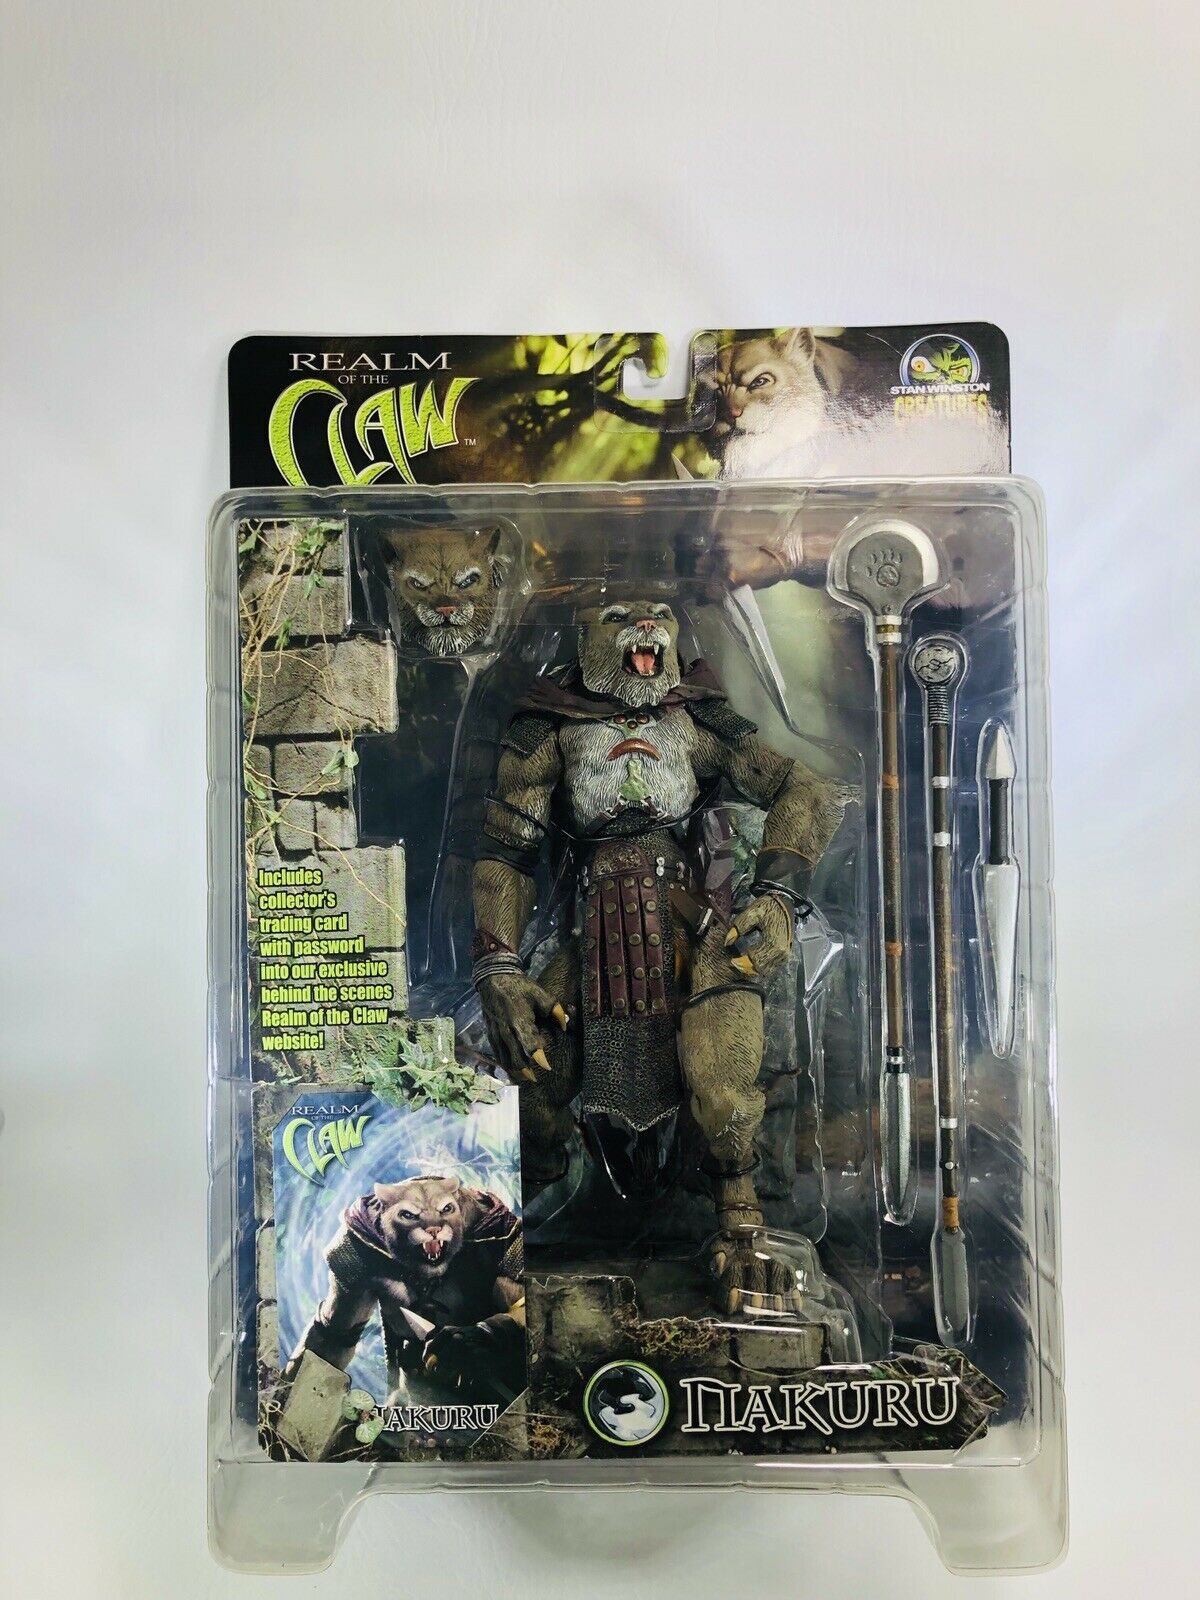 Stan Winston Creatures Nakuru Realm Of The Claw Action Figure